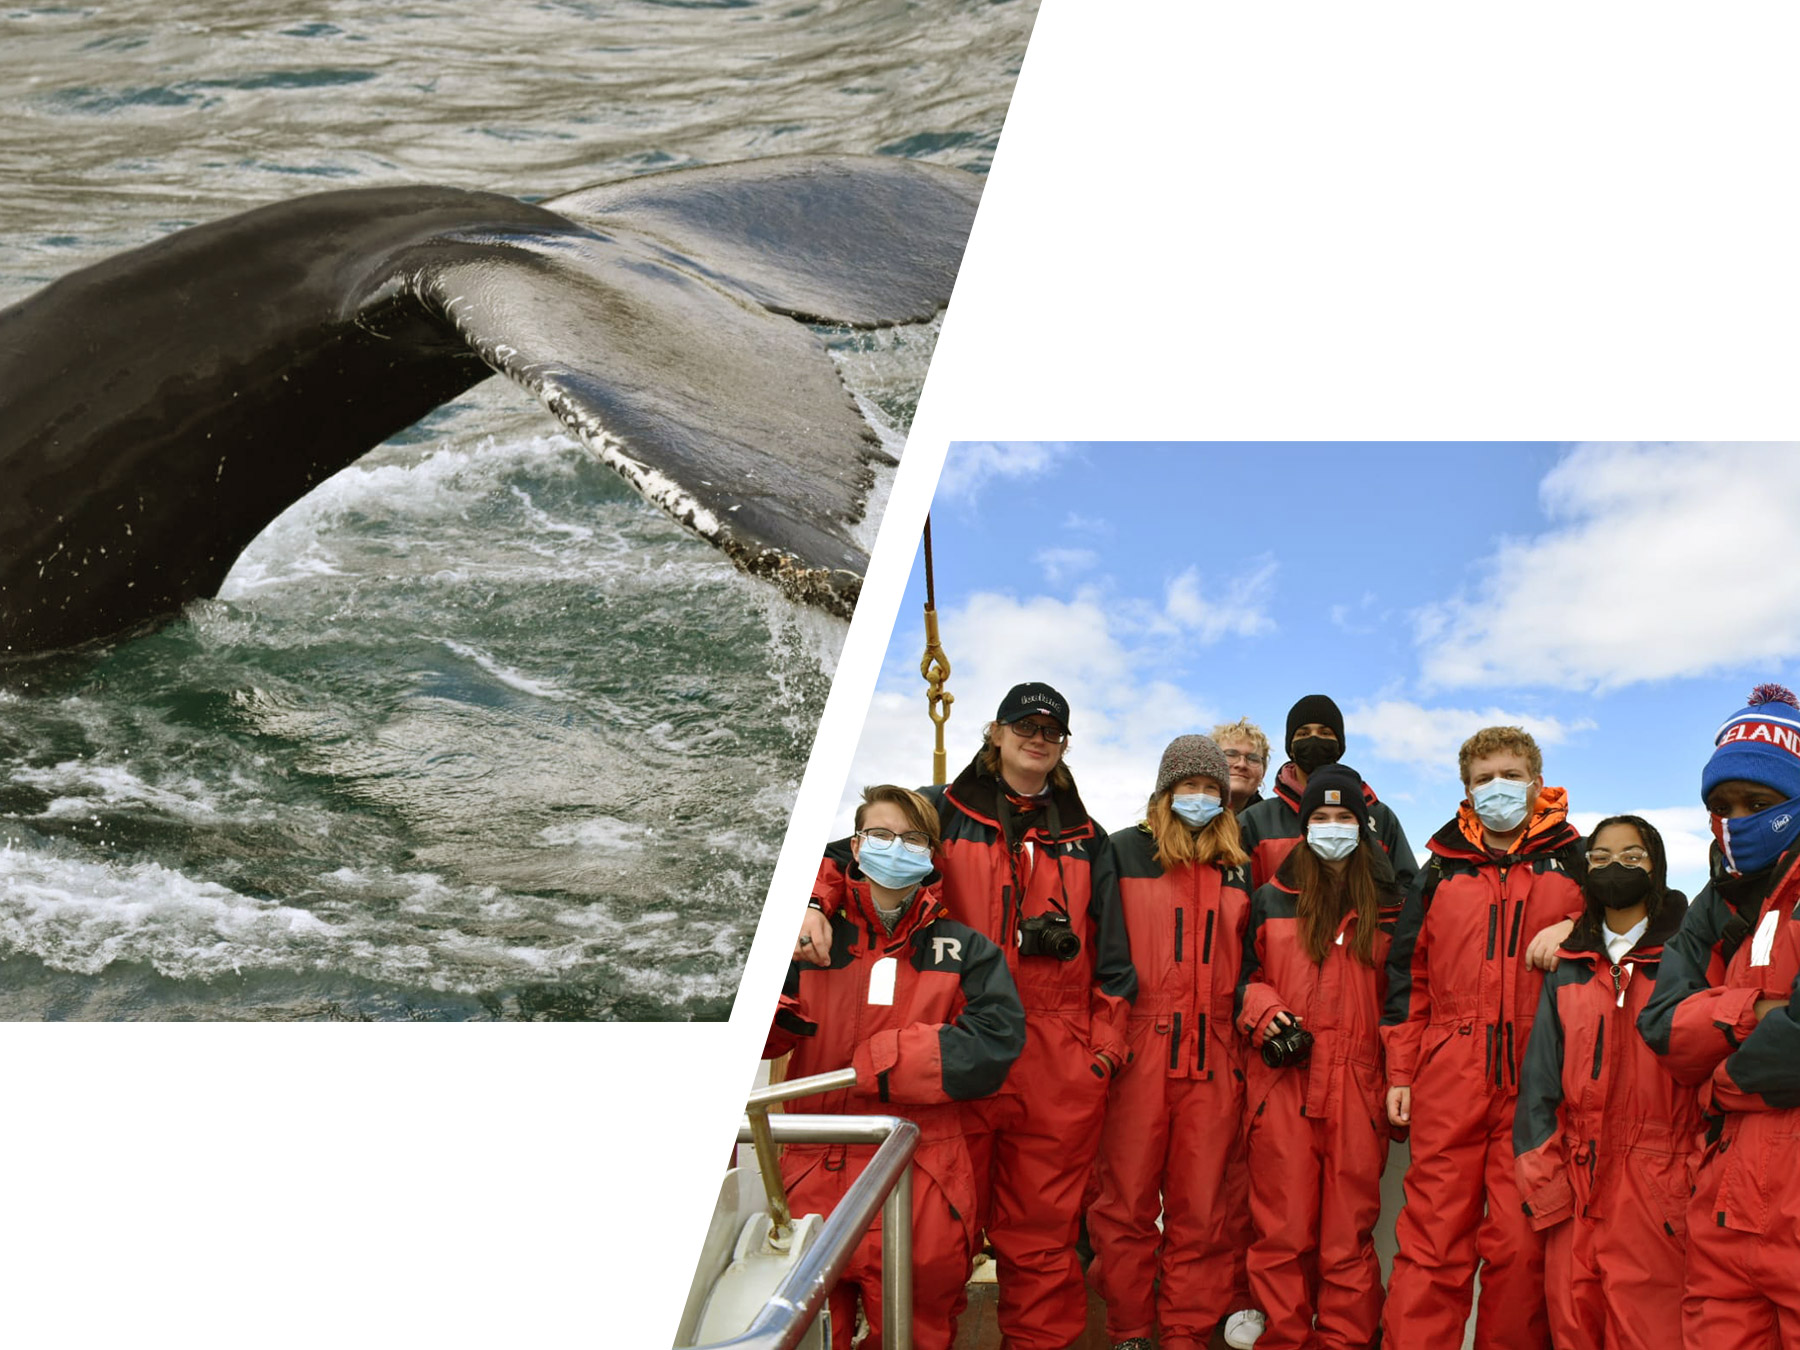 group is ready to travel again and also ready to whale watch